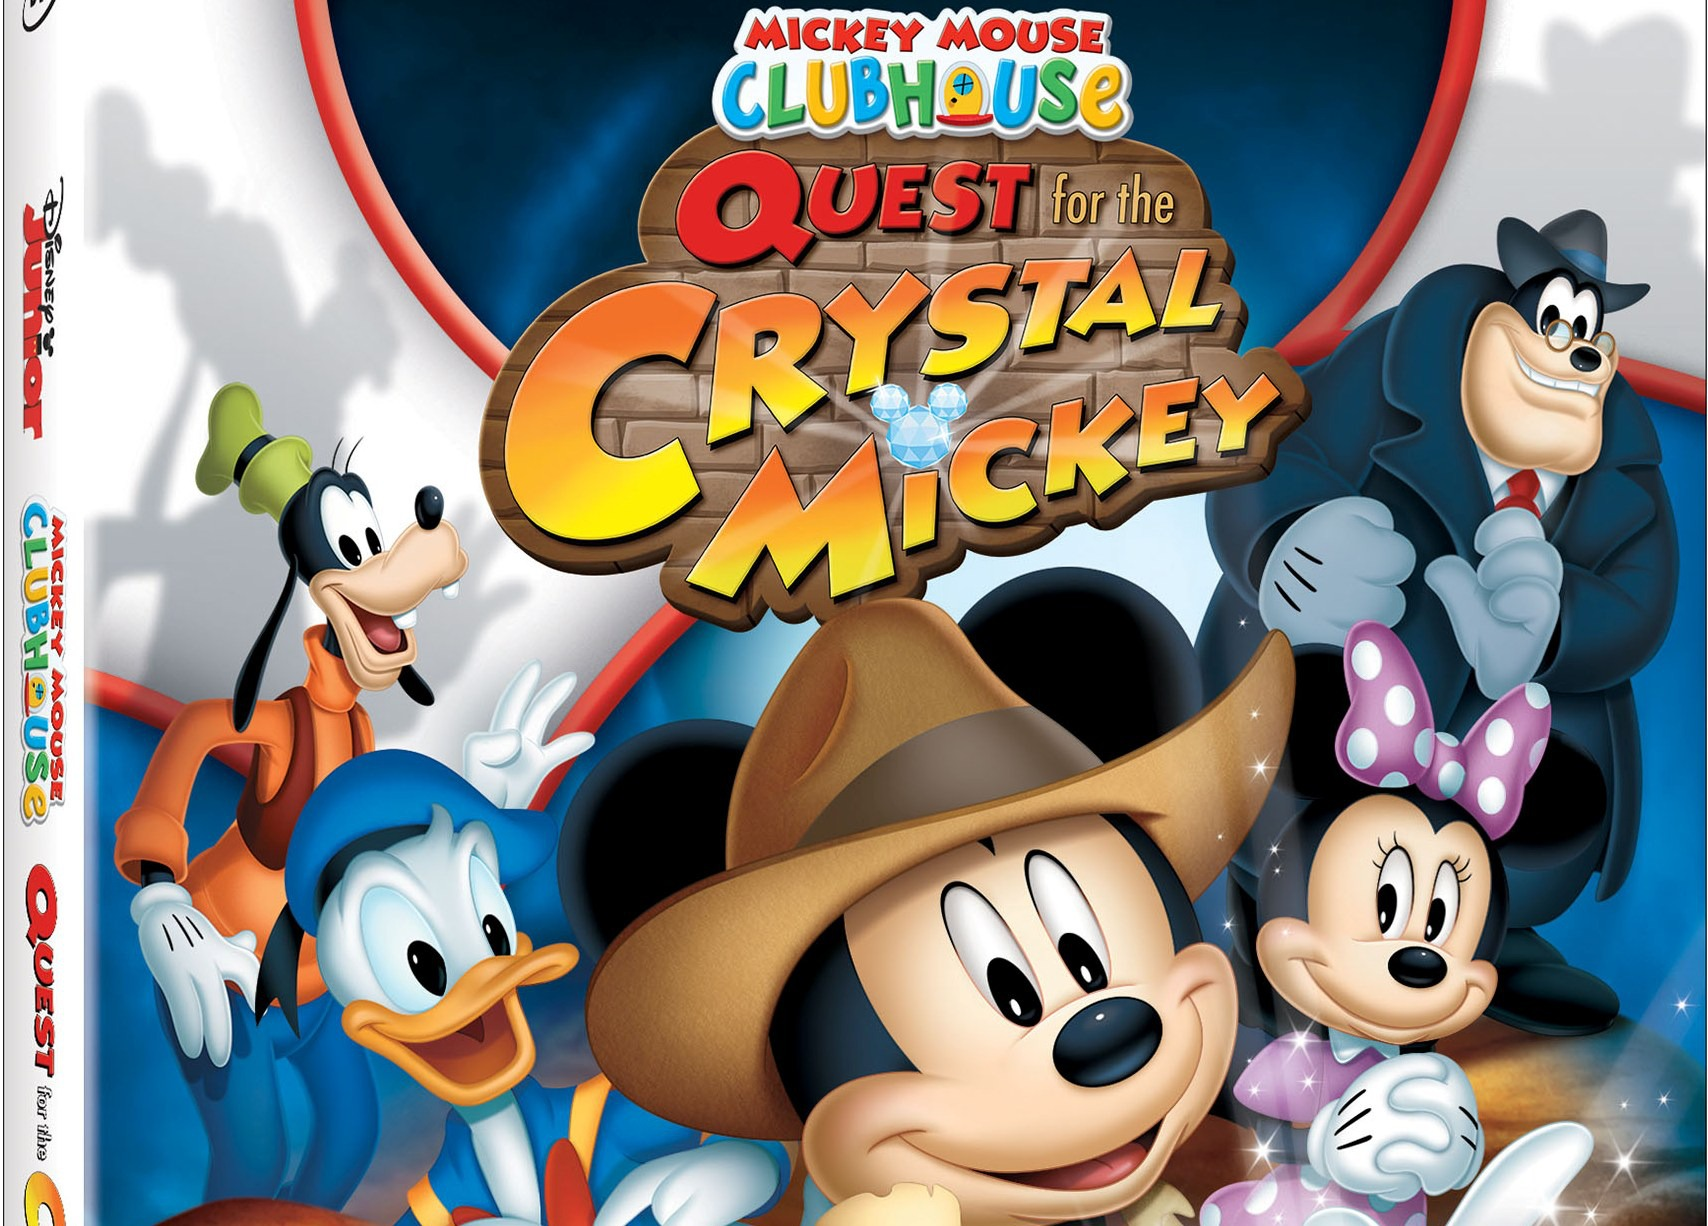 Mickey Mouse Clubhouse Crystal Mickey